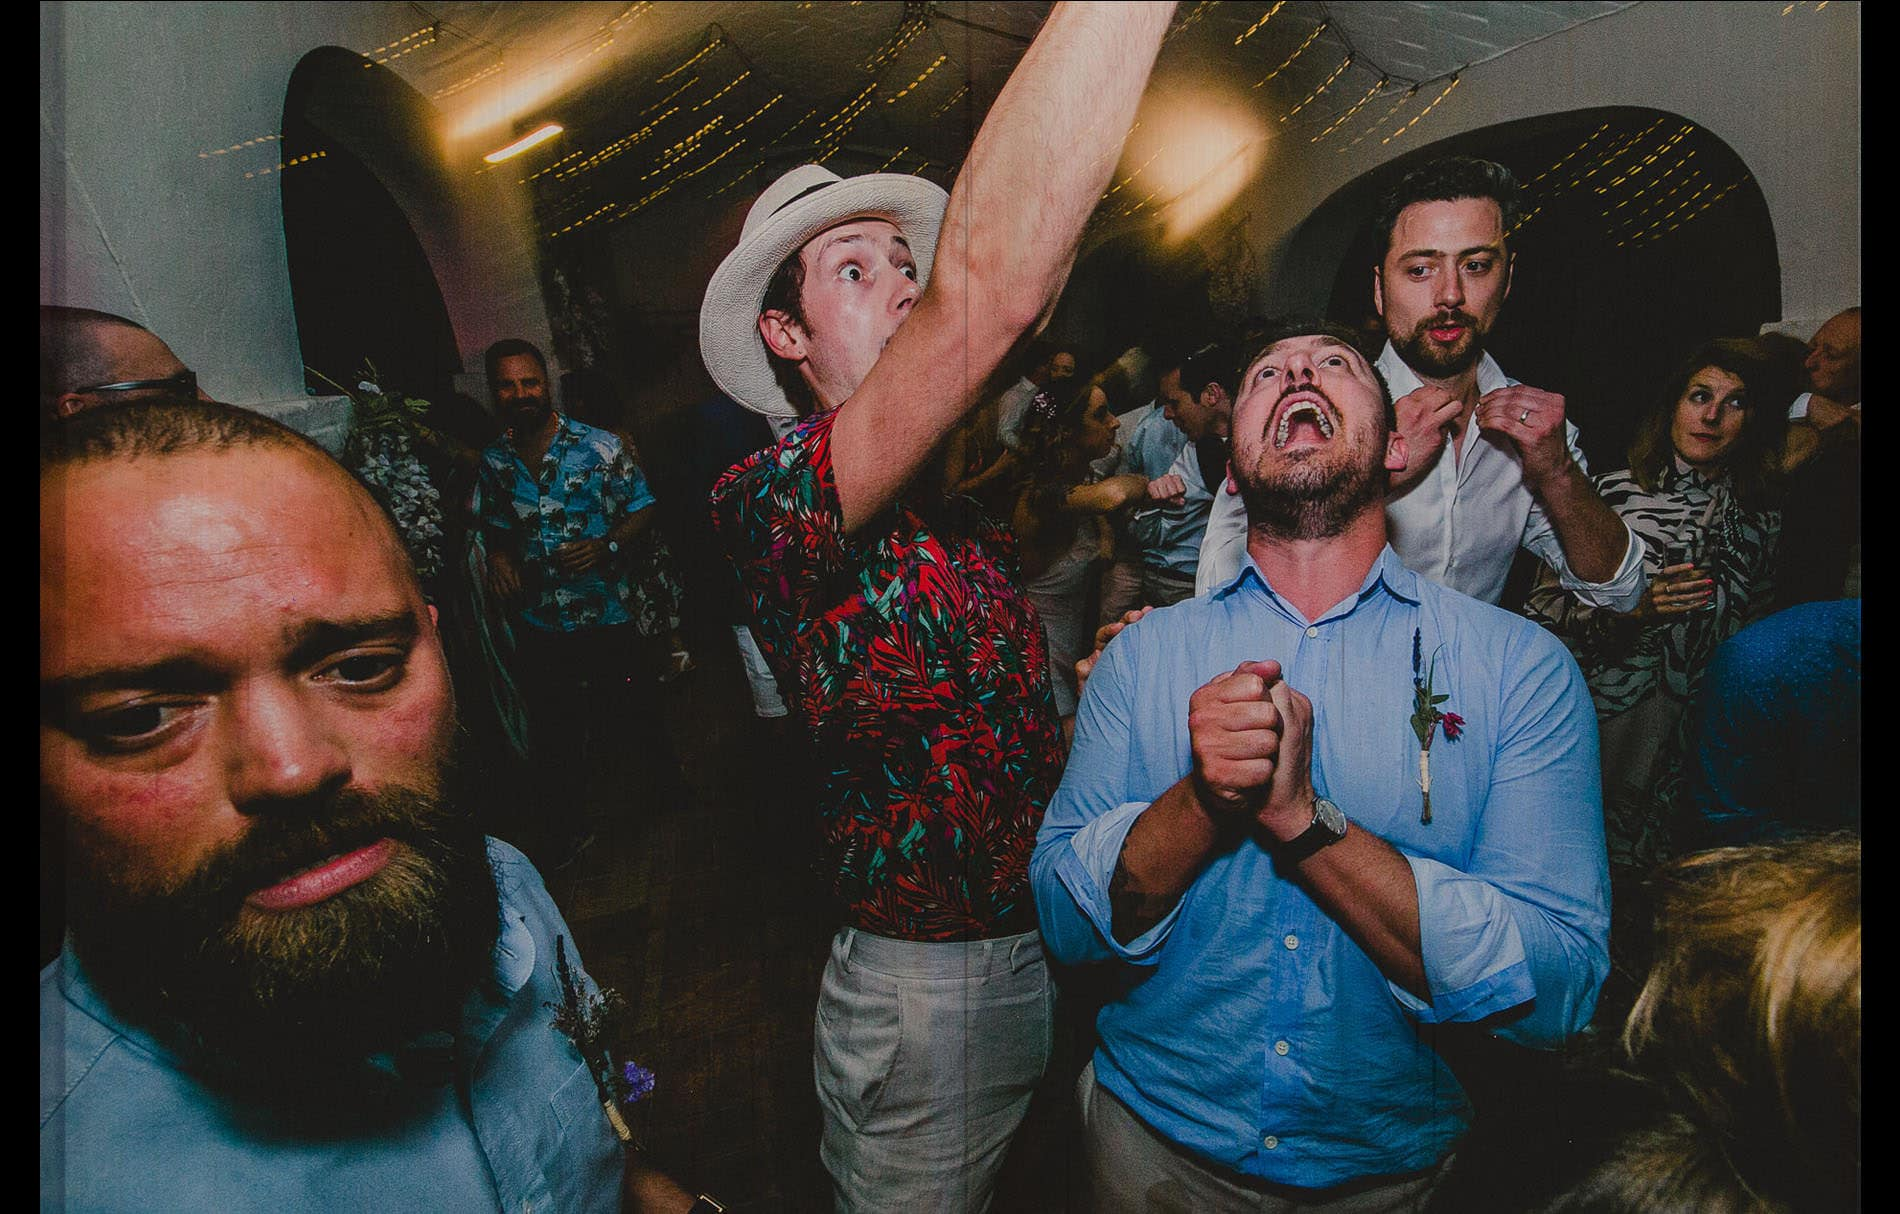 crazy wedding party, people dancing madness